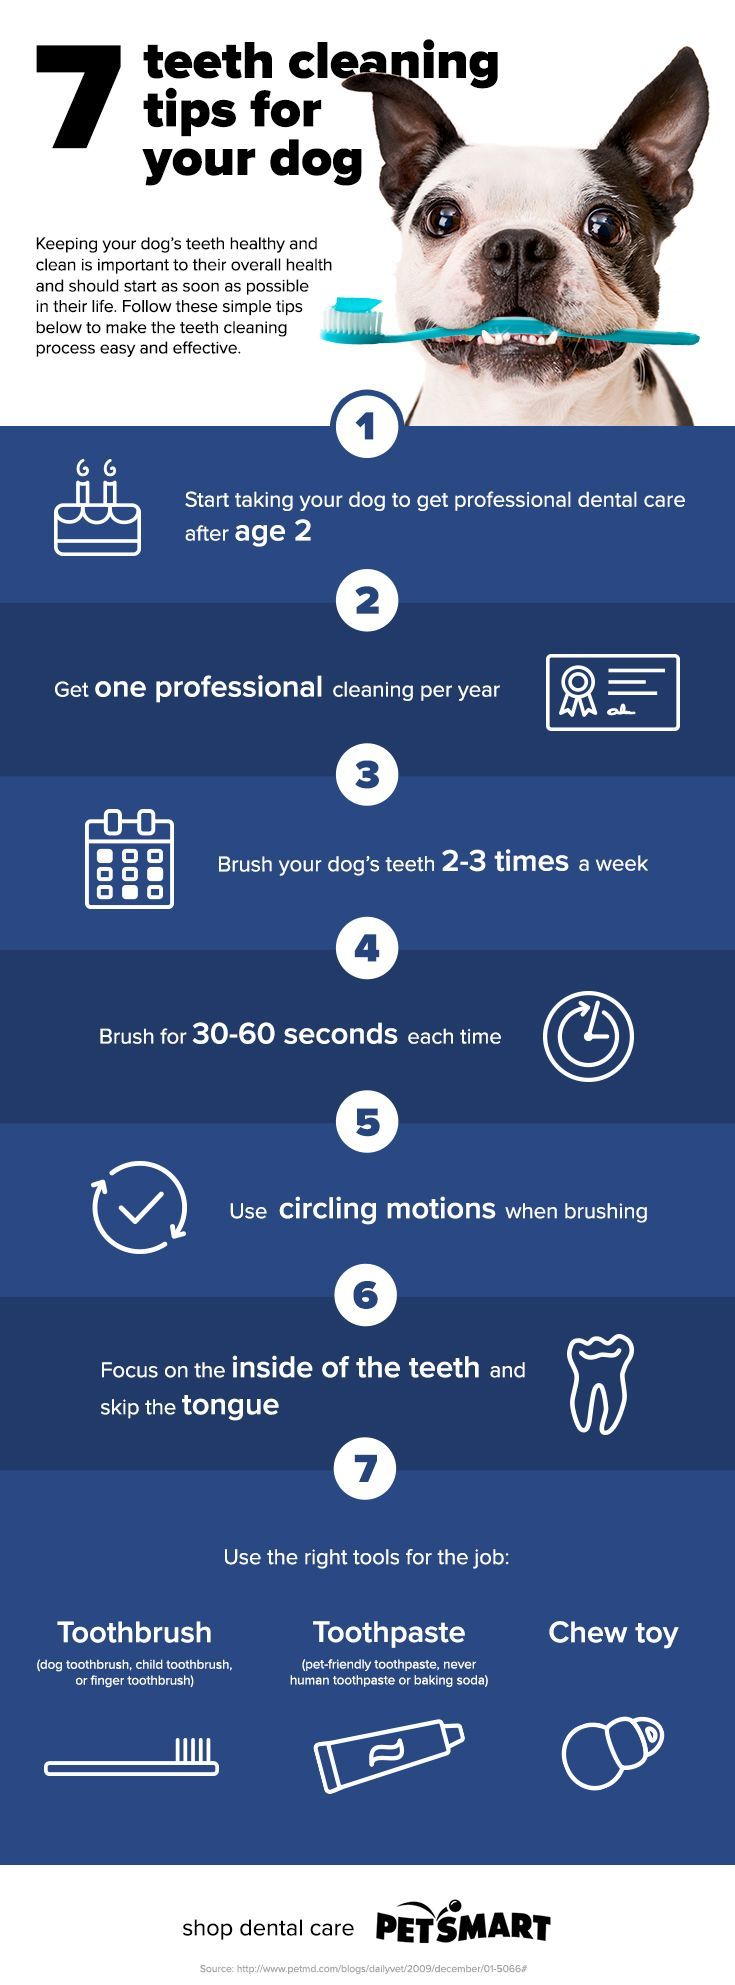 Doggie Dental Care: Check out our 7 tips for keeping your dog's teeth clean and…